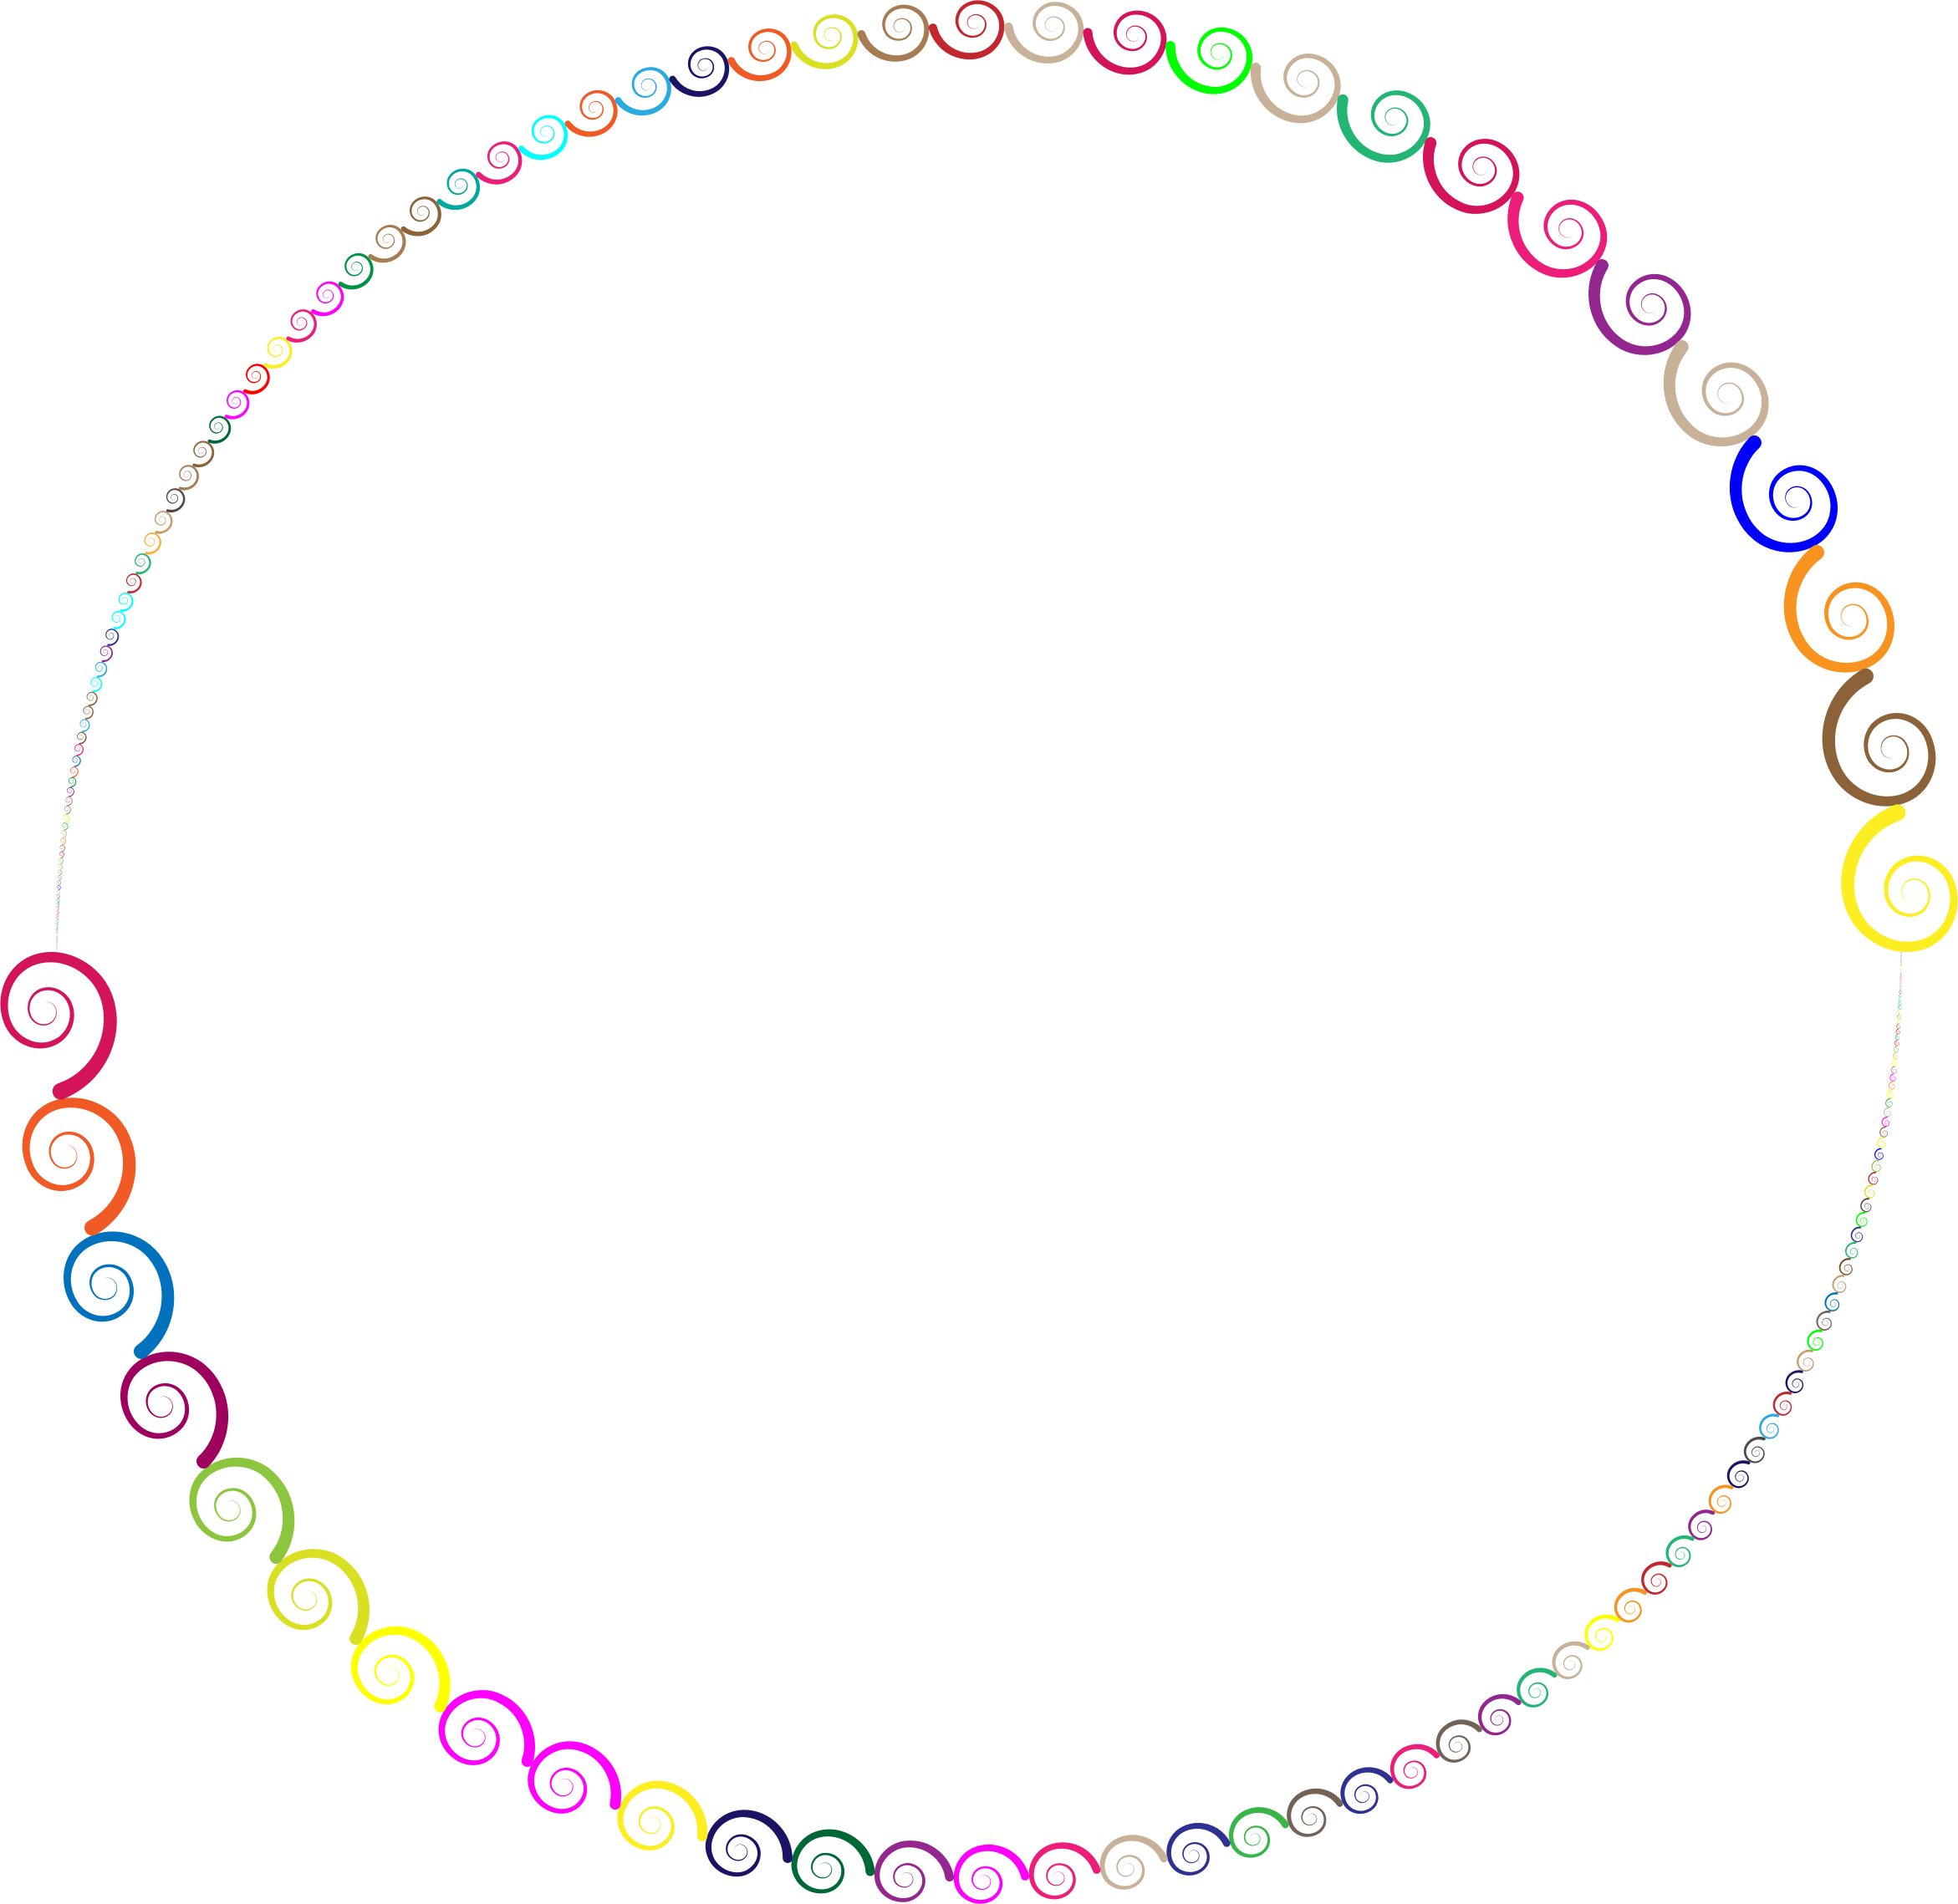 Colorful Spirals Circle by GDJ